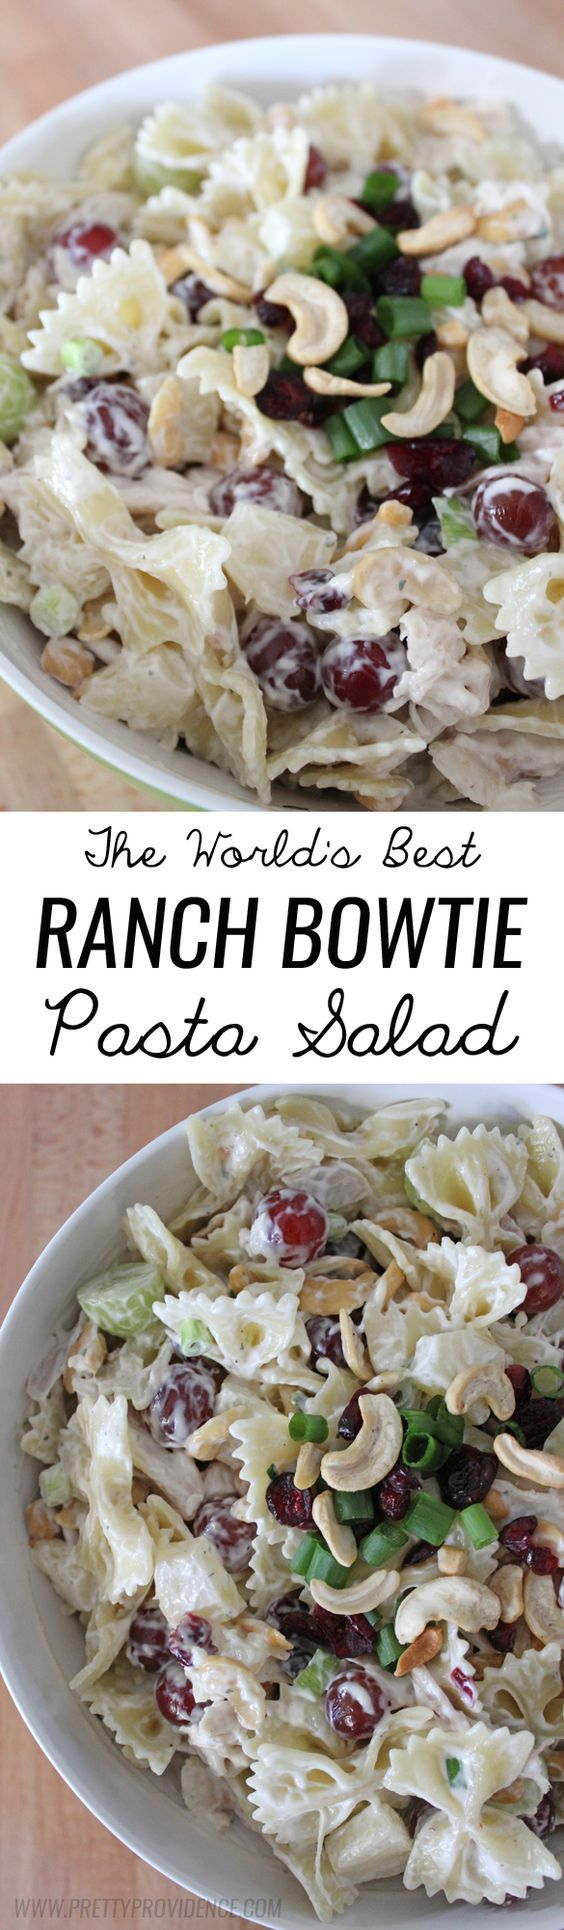 Literally my FAVORITE EVER pasta salad! It is the perfect blend of sweet and salty and I've never mt anyone who didn't love it!